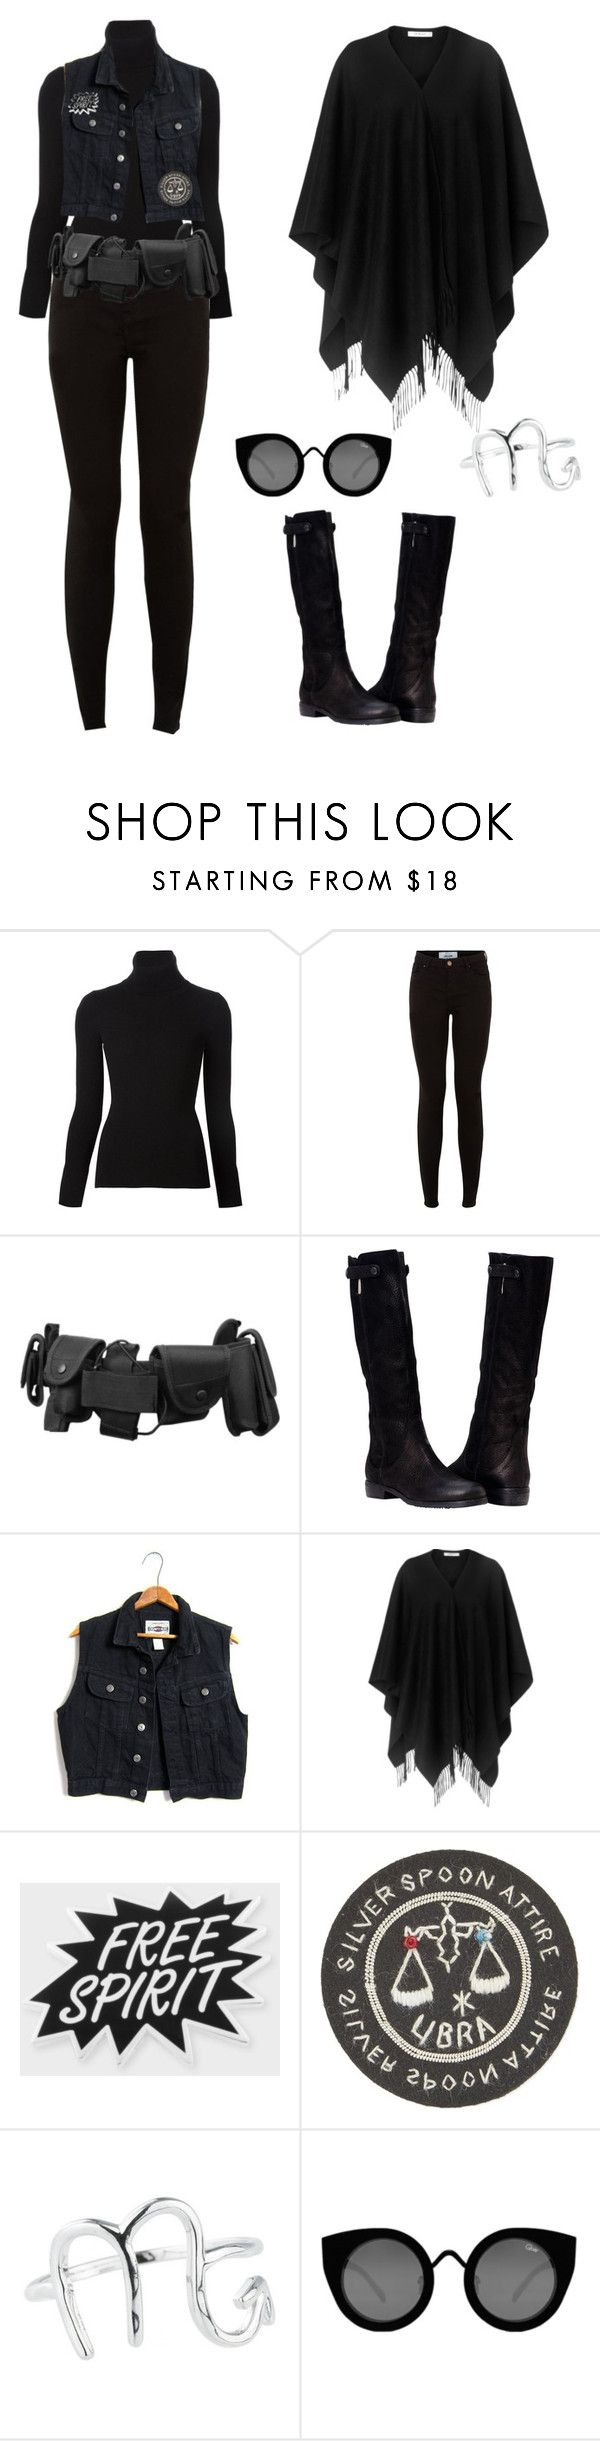 """""""Strega Fashion #5"""" by theeverydaygoth ❤ liked on Polyvore featuring Emanuel Ungaro, New Look, L.K.Bennett, Paul Smith, Silver Spoon Attire, Rock 'N Rose and Quay"""